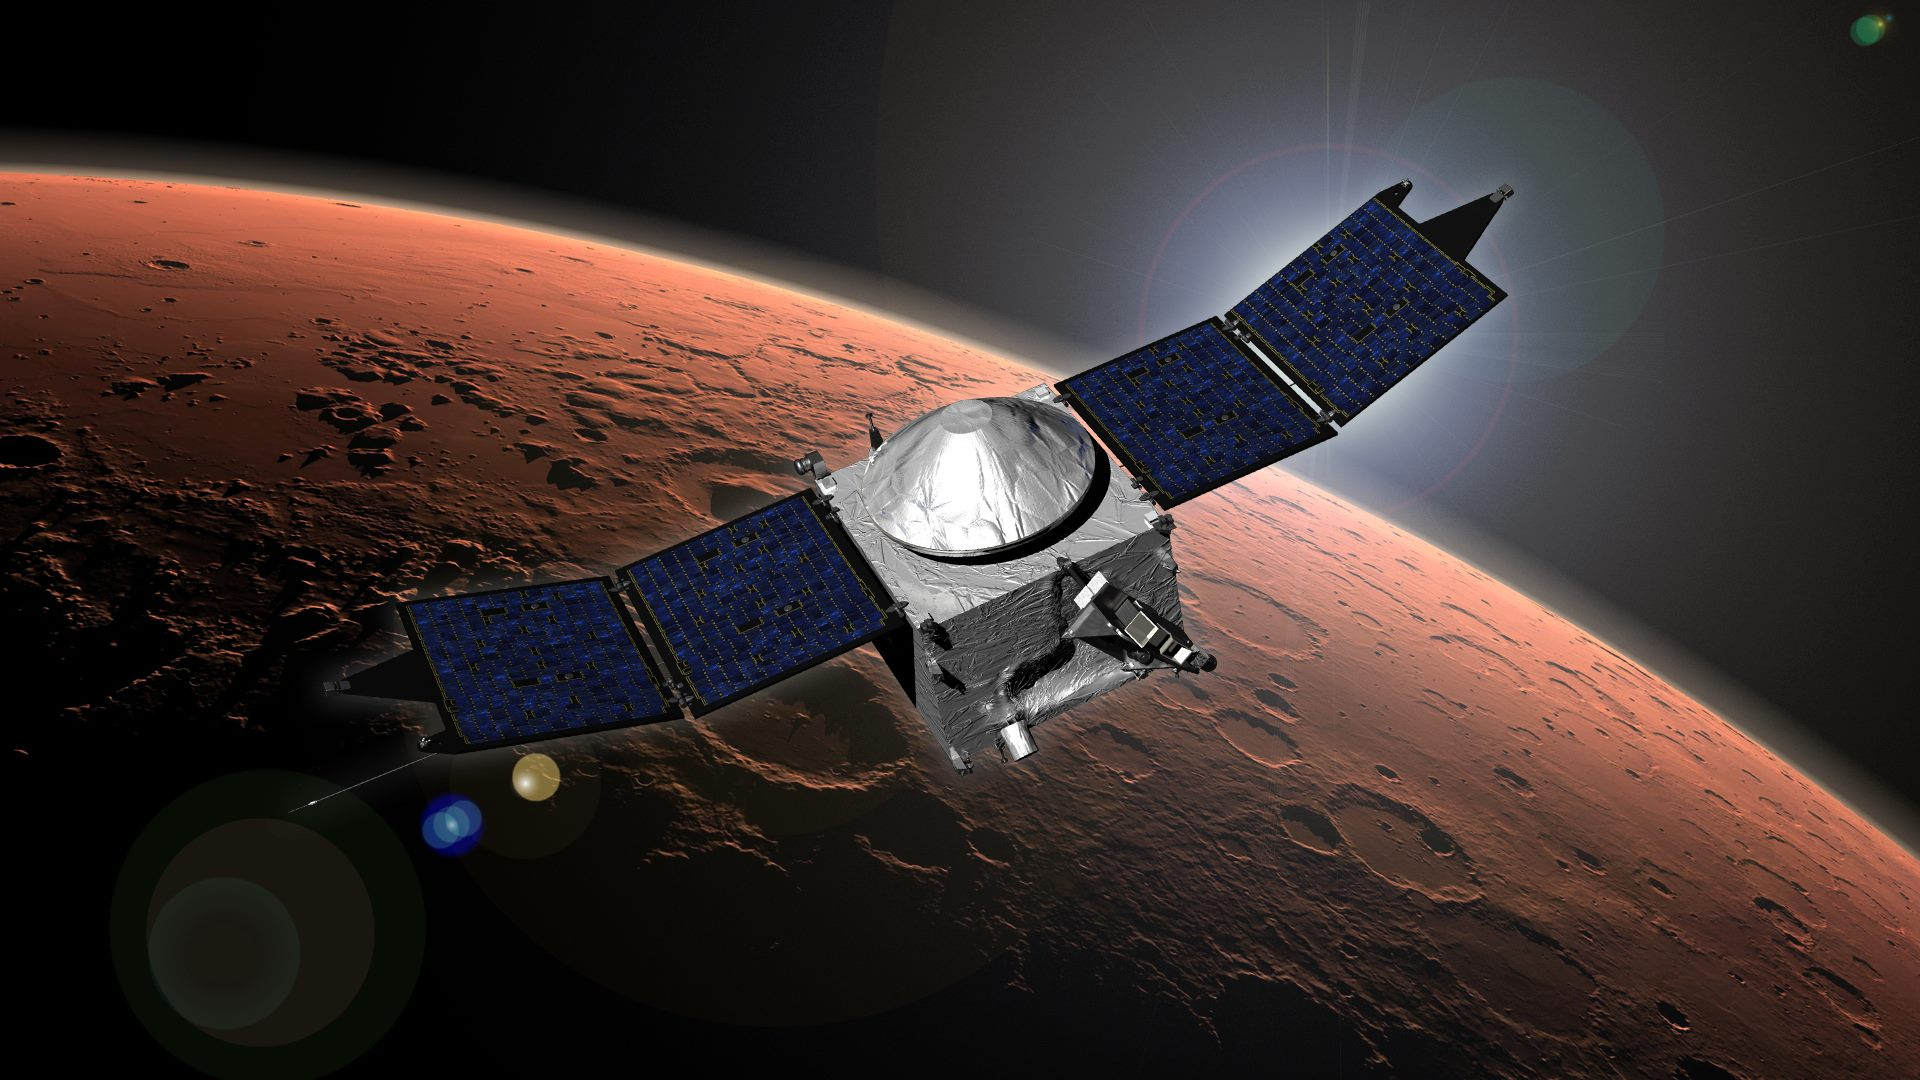 NASAs Next Mars Lander Passes Big Test Ahead   Spacecom